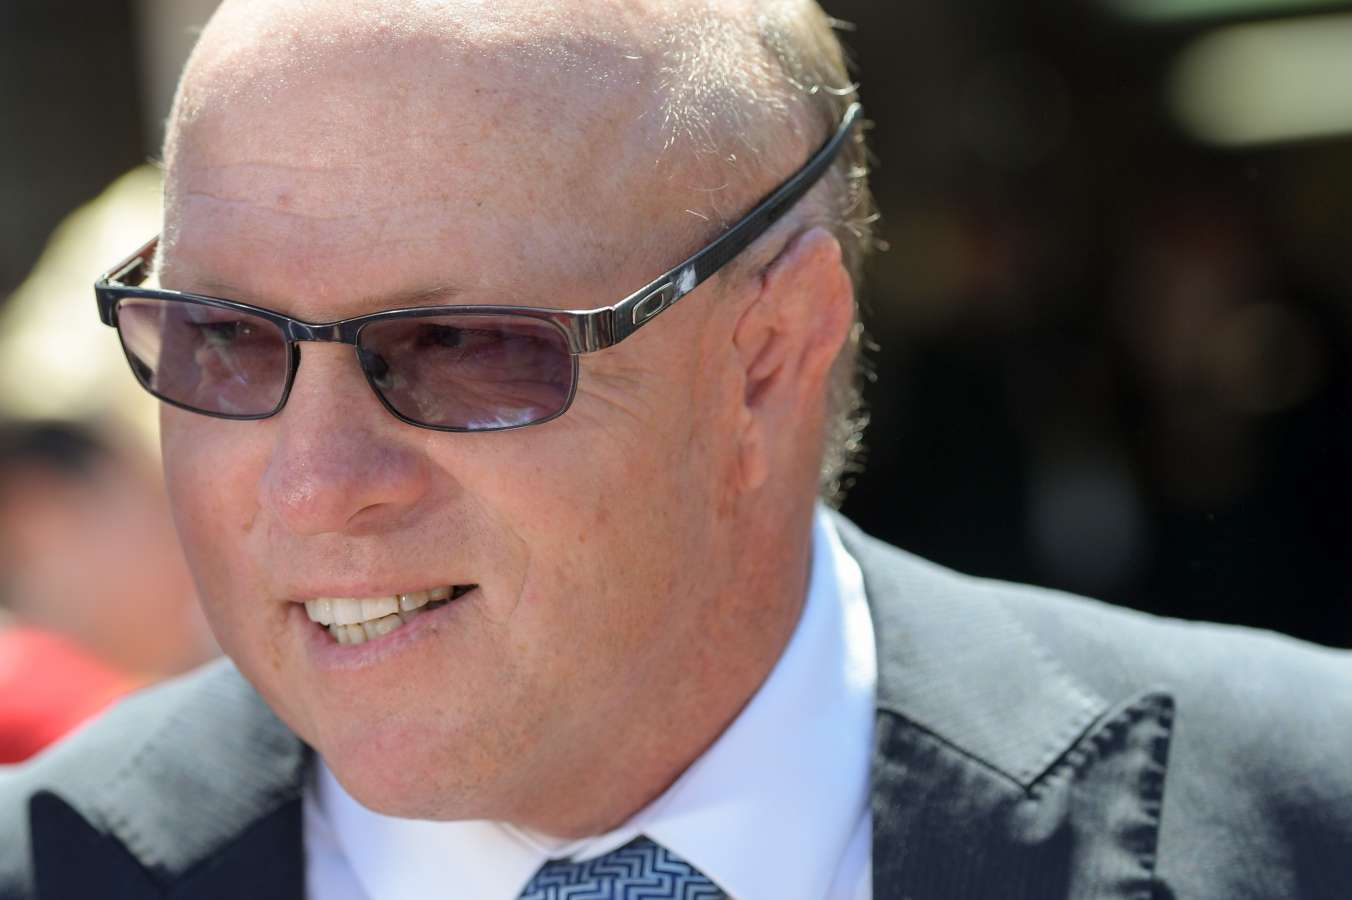 Australia Doping Conspiracy: Top Trainer Smerdon, Two Others Get Lifetime Bans